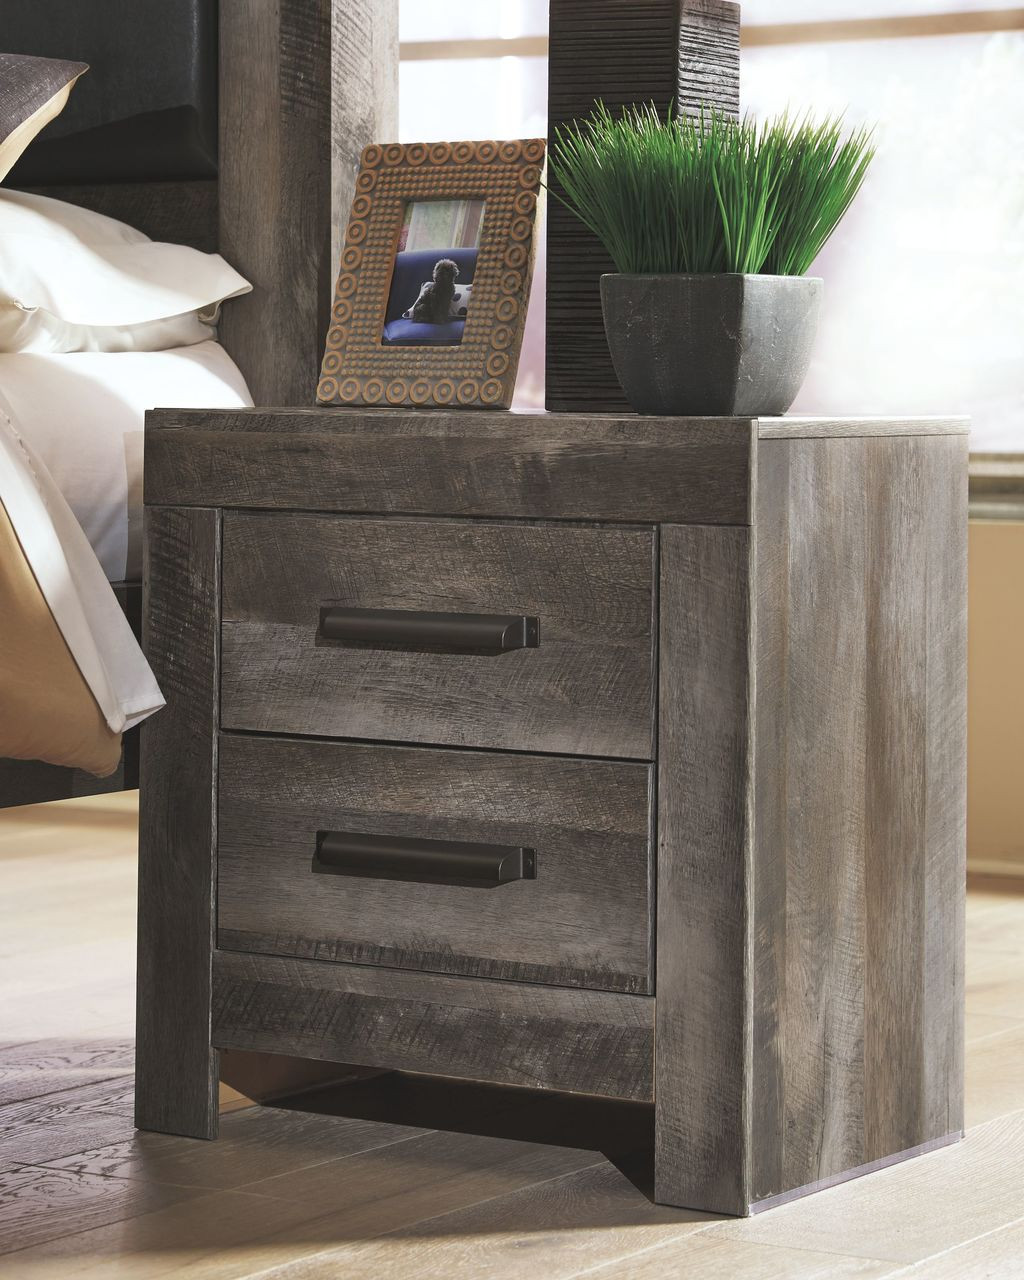 d24f3880245f The Wynnlow Gray Two Drawer Night Stand available at Sweet Home Furniture  serving Falls Church